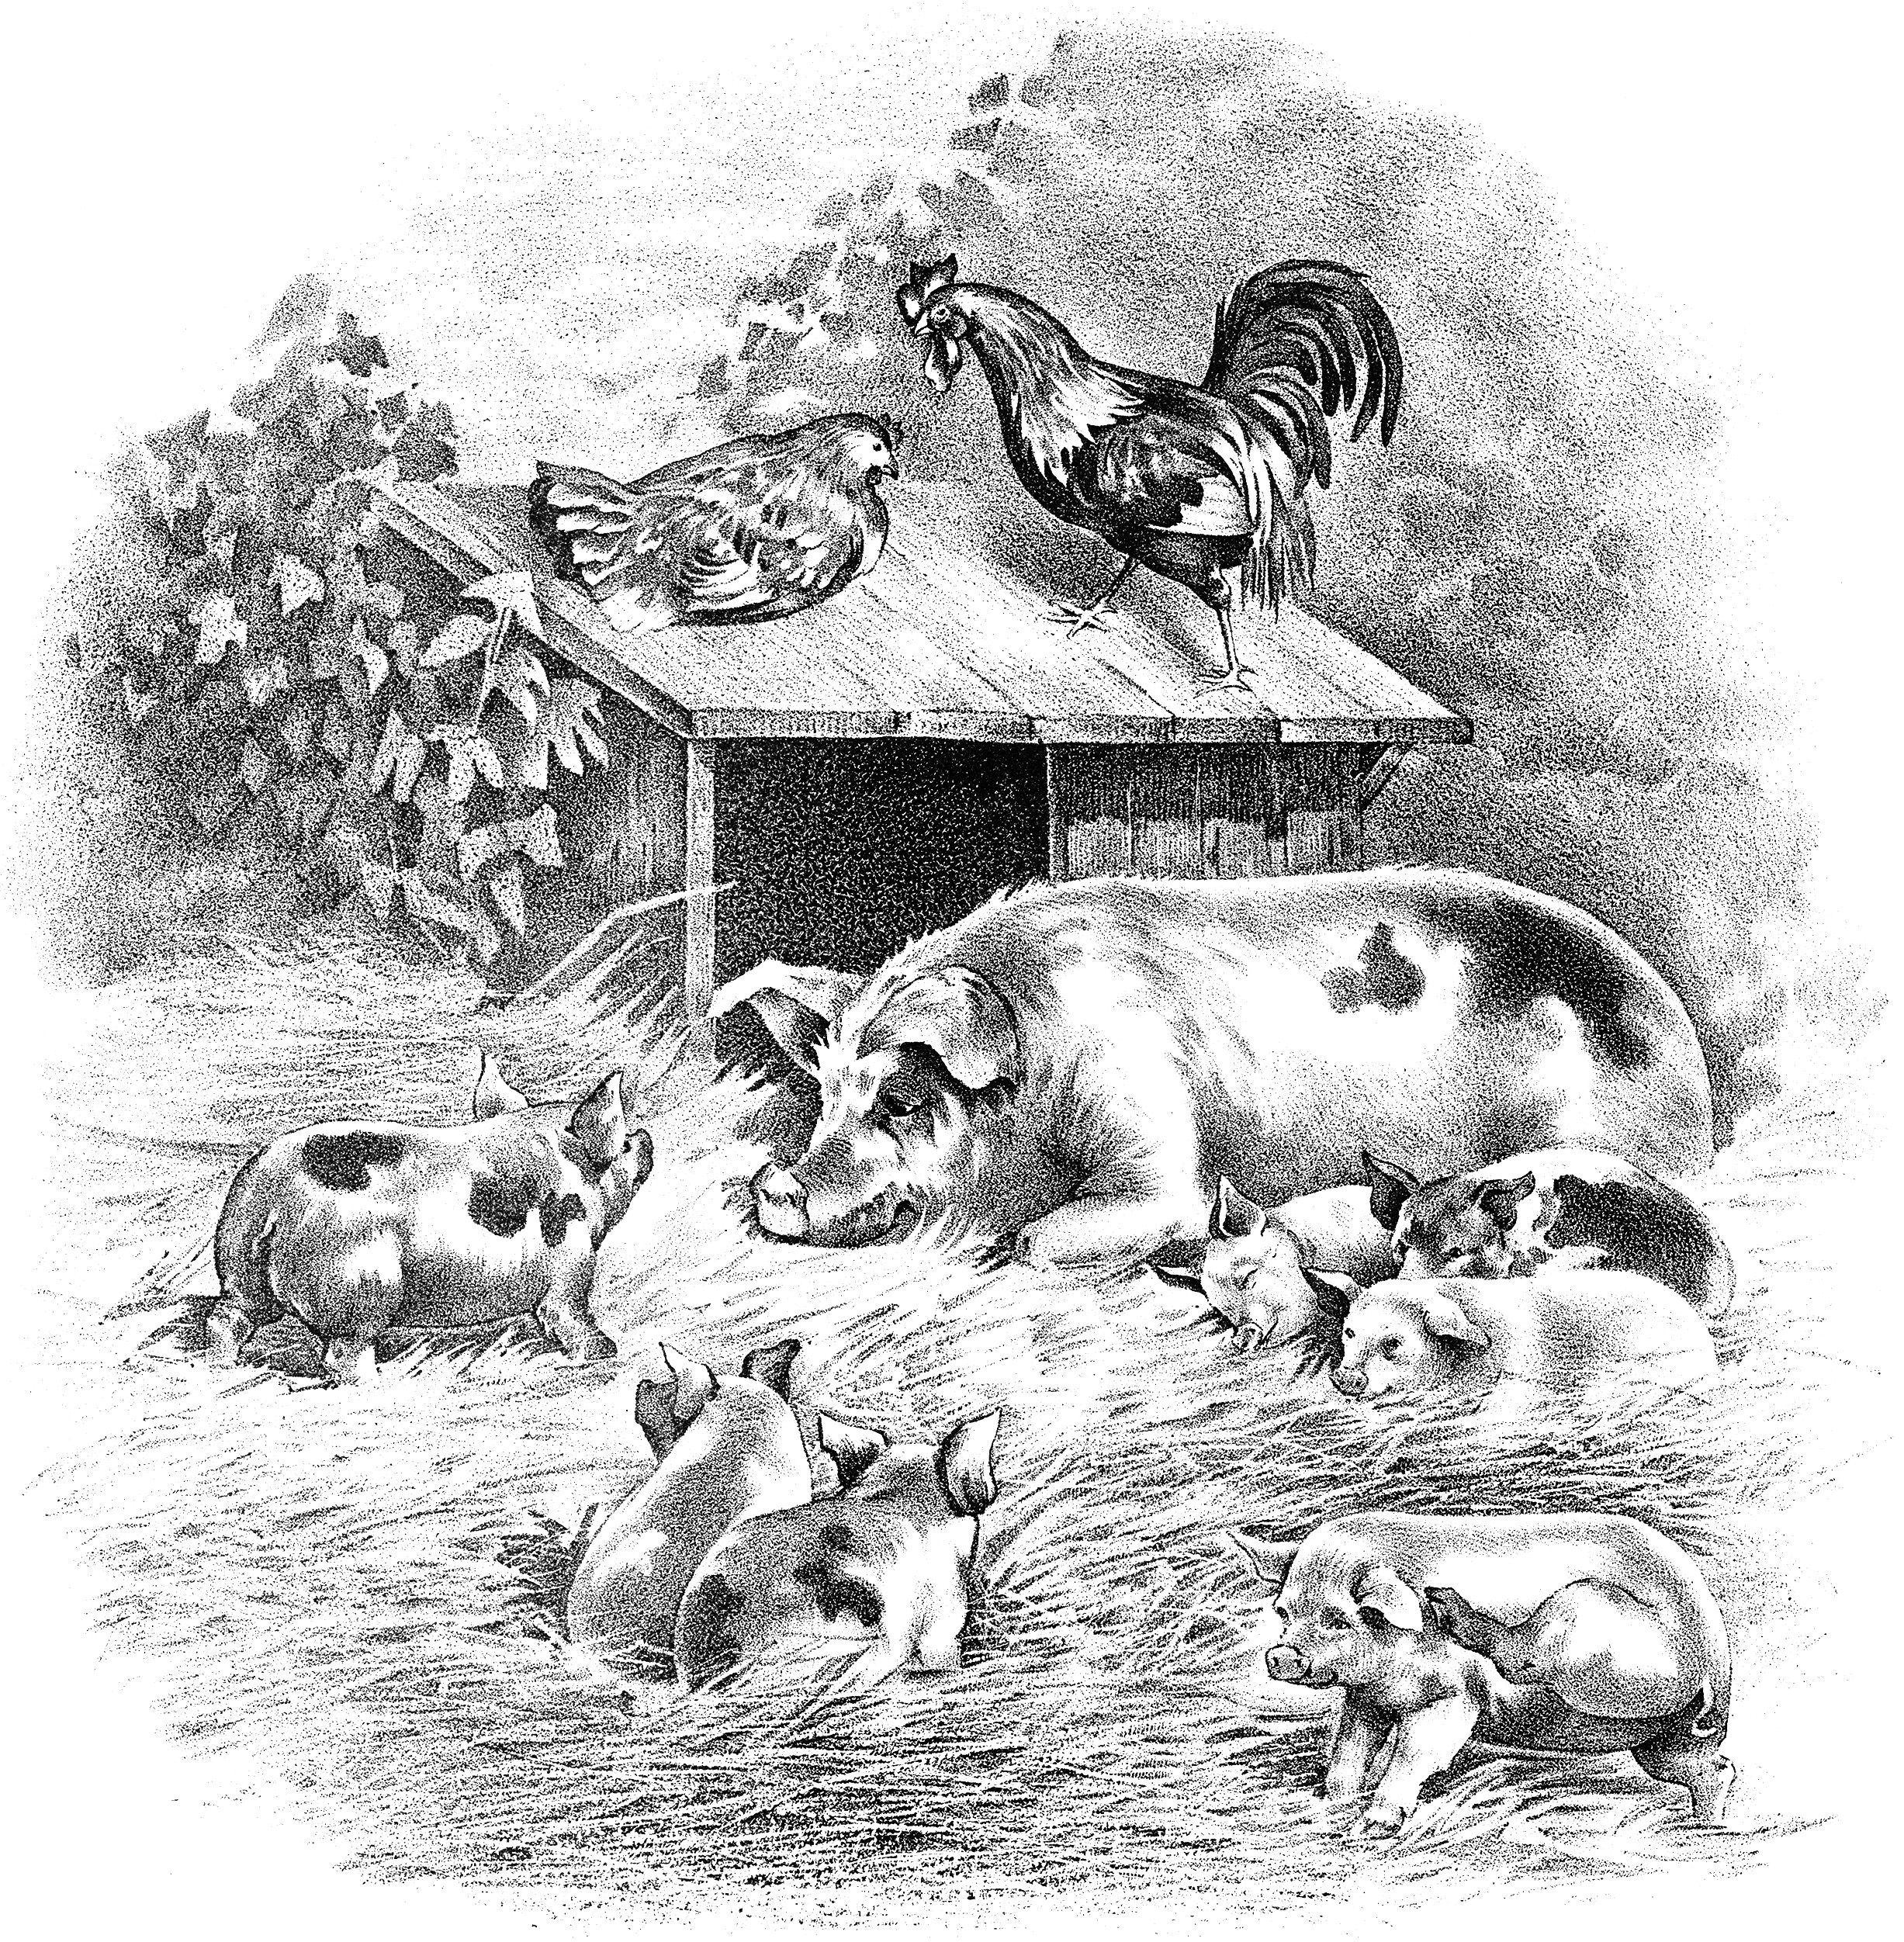 Vintage Farm Animals Image Pig Piglet Rooster Hen Illustration Black And White Clip Art